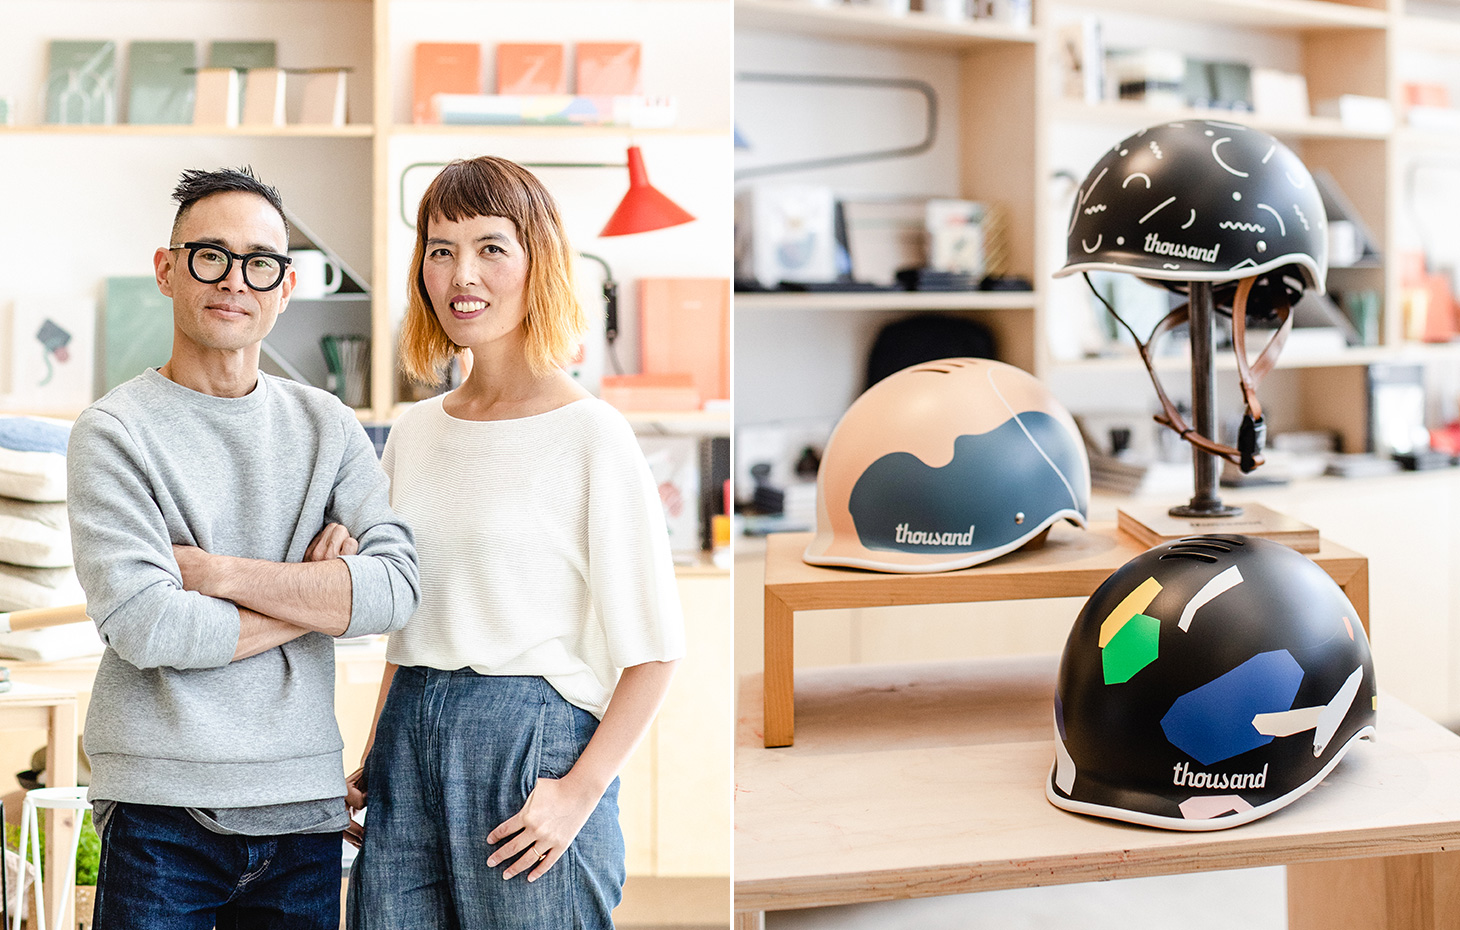 Thousand x Poketo collaboration bike helmets